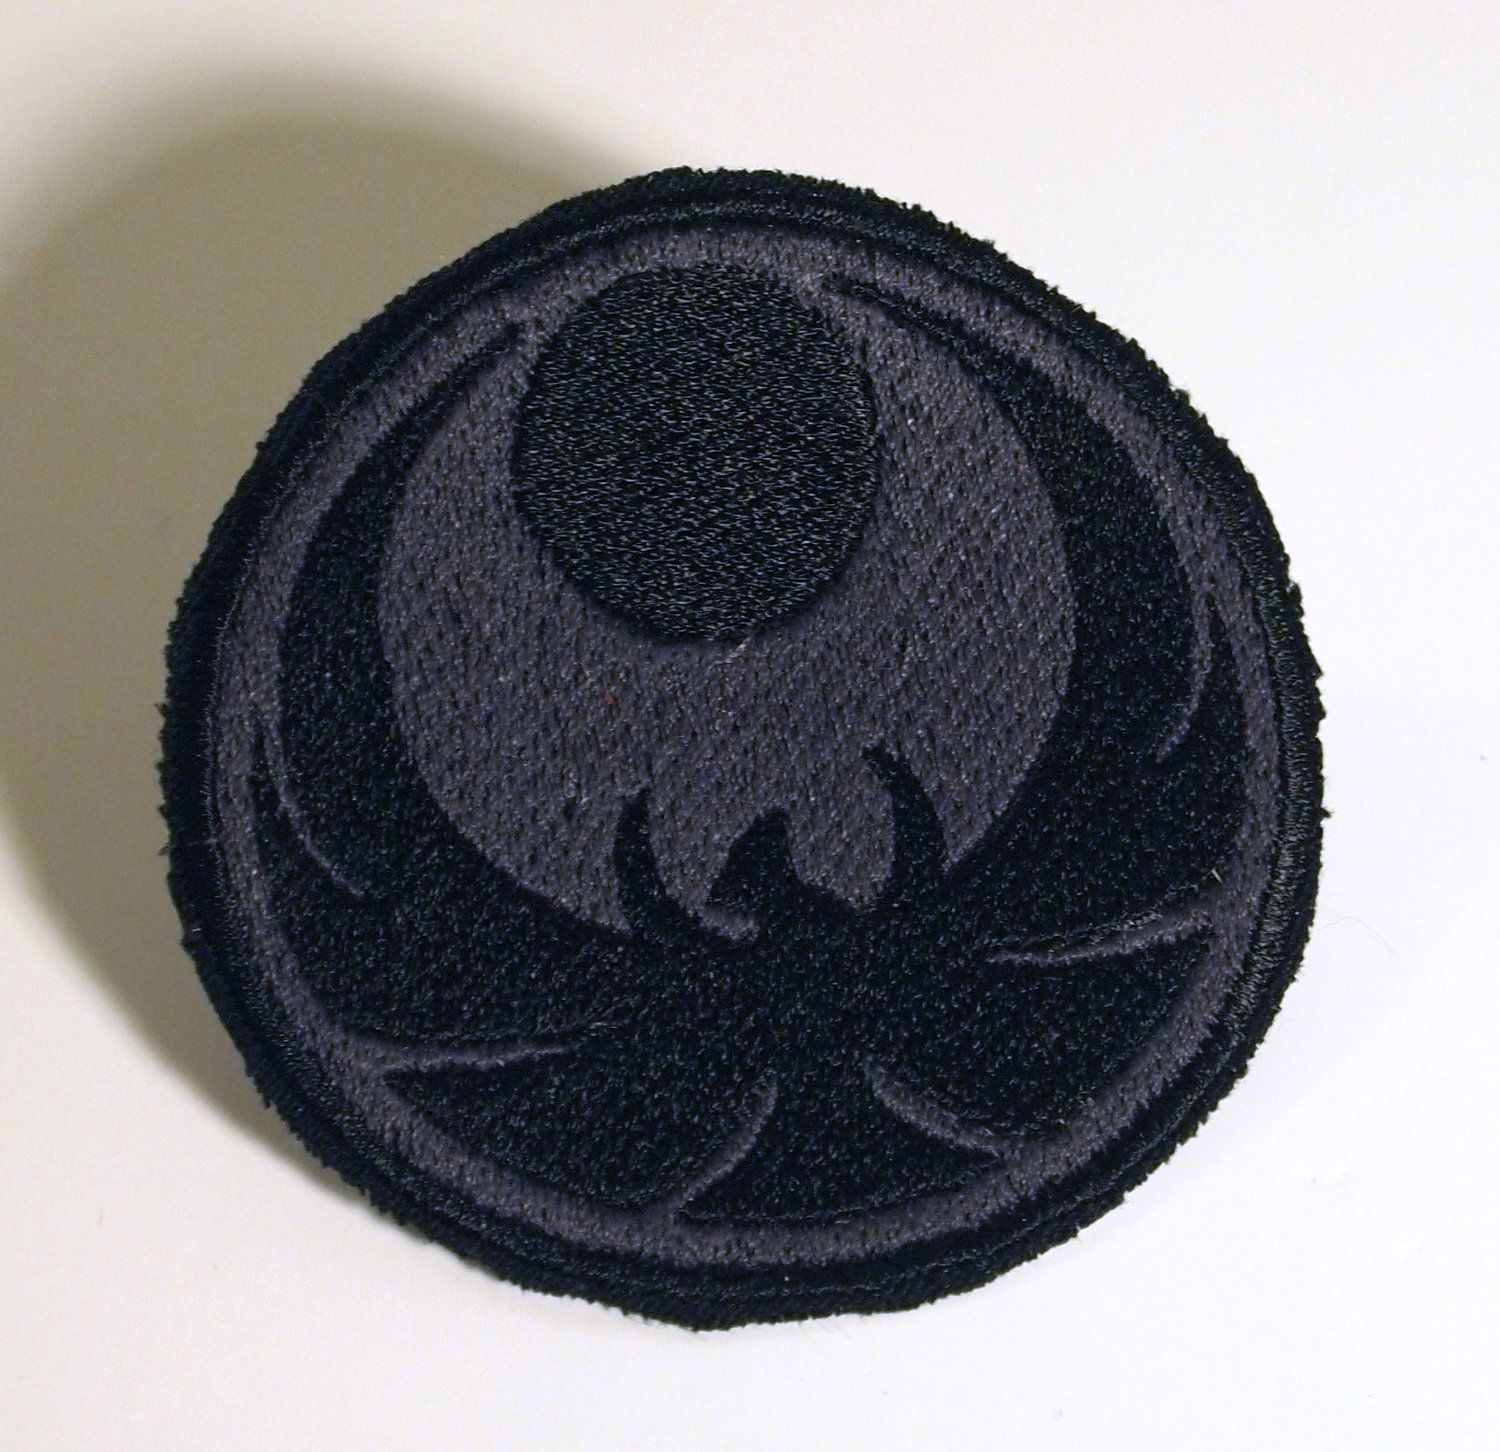 Skyrim inspired- Thieves guild - Nightingale Nocturnal embroidered iron on patch. $6.00, via Etsy.